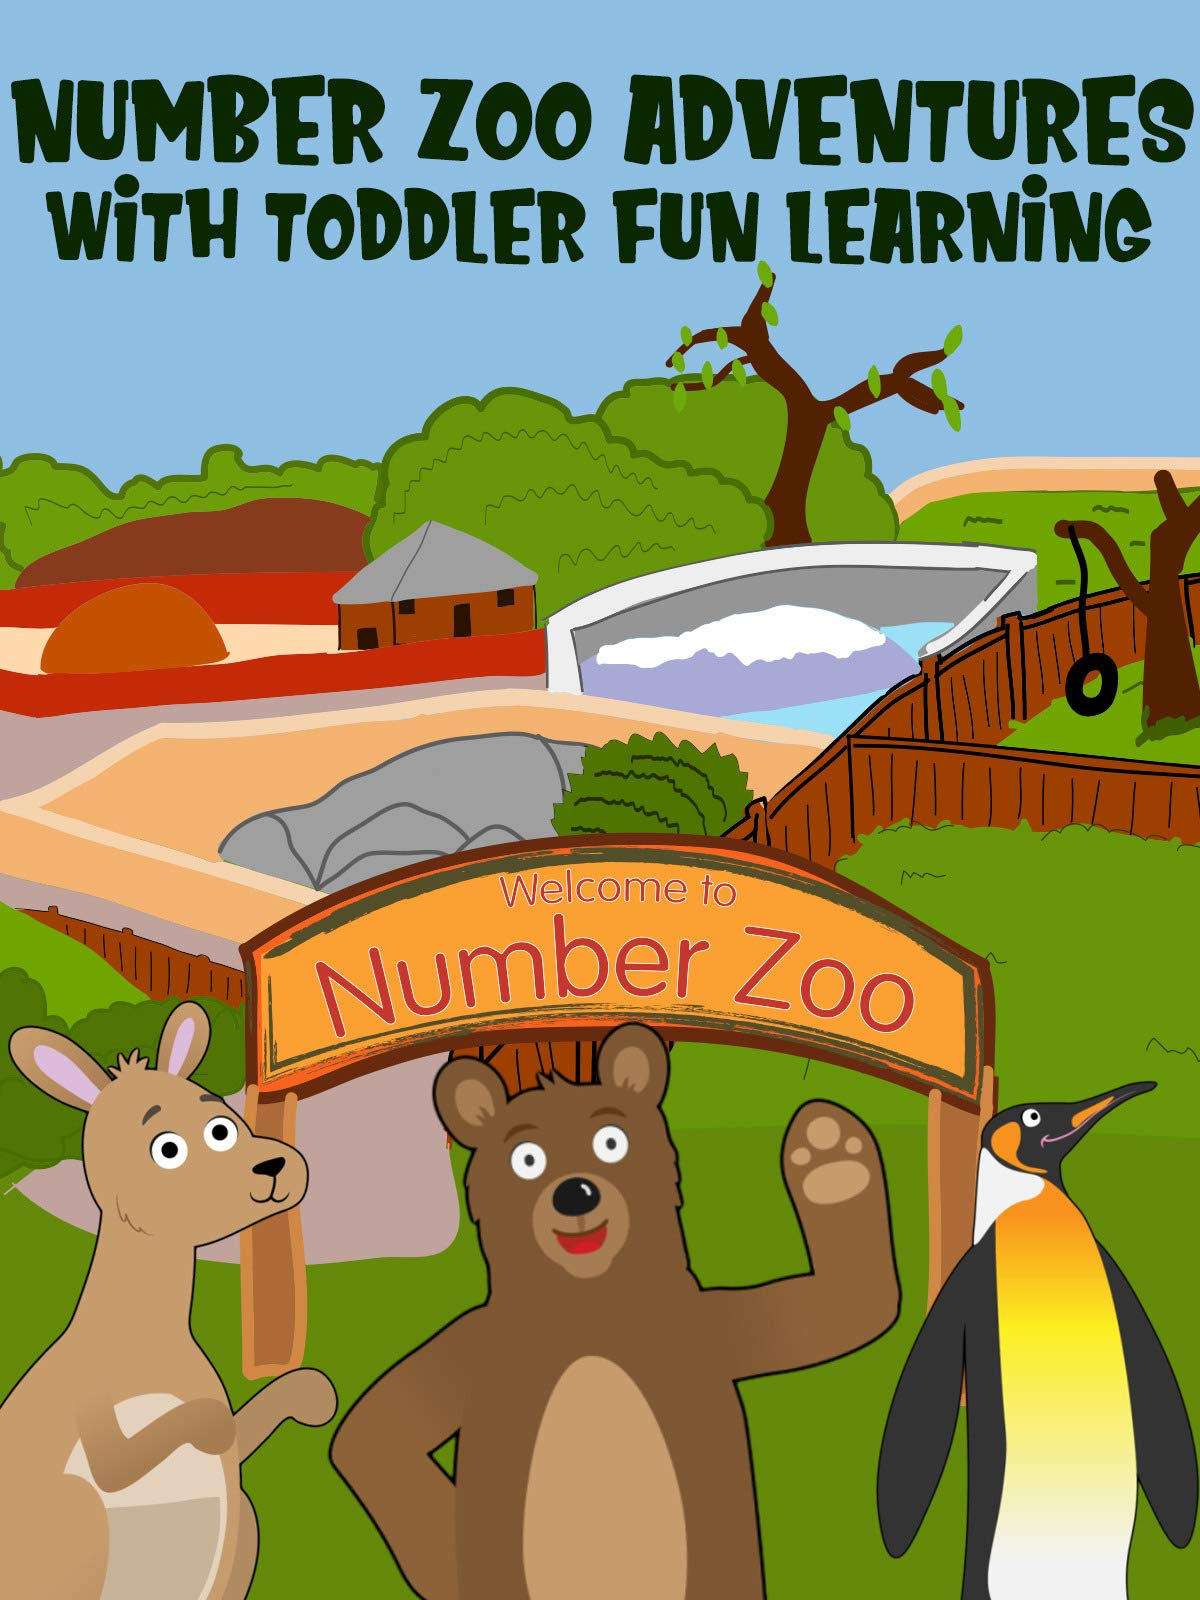 Number Zoo Adventures with Toddler Fun Learning